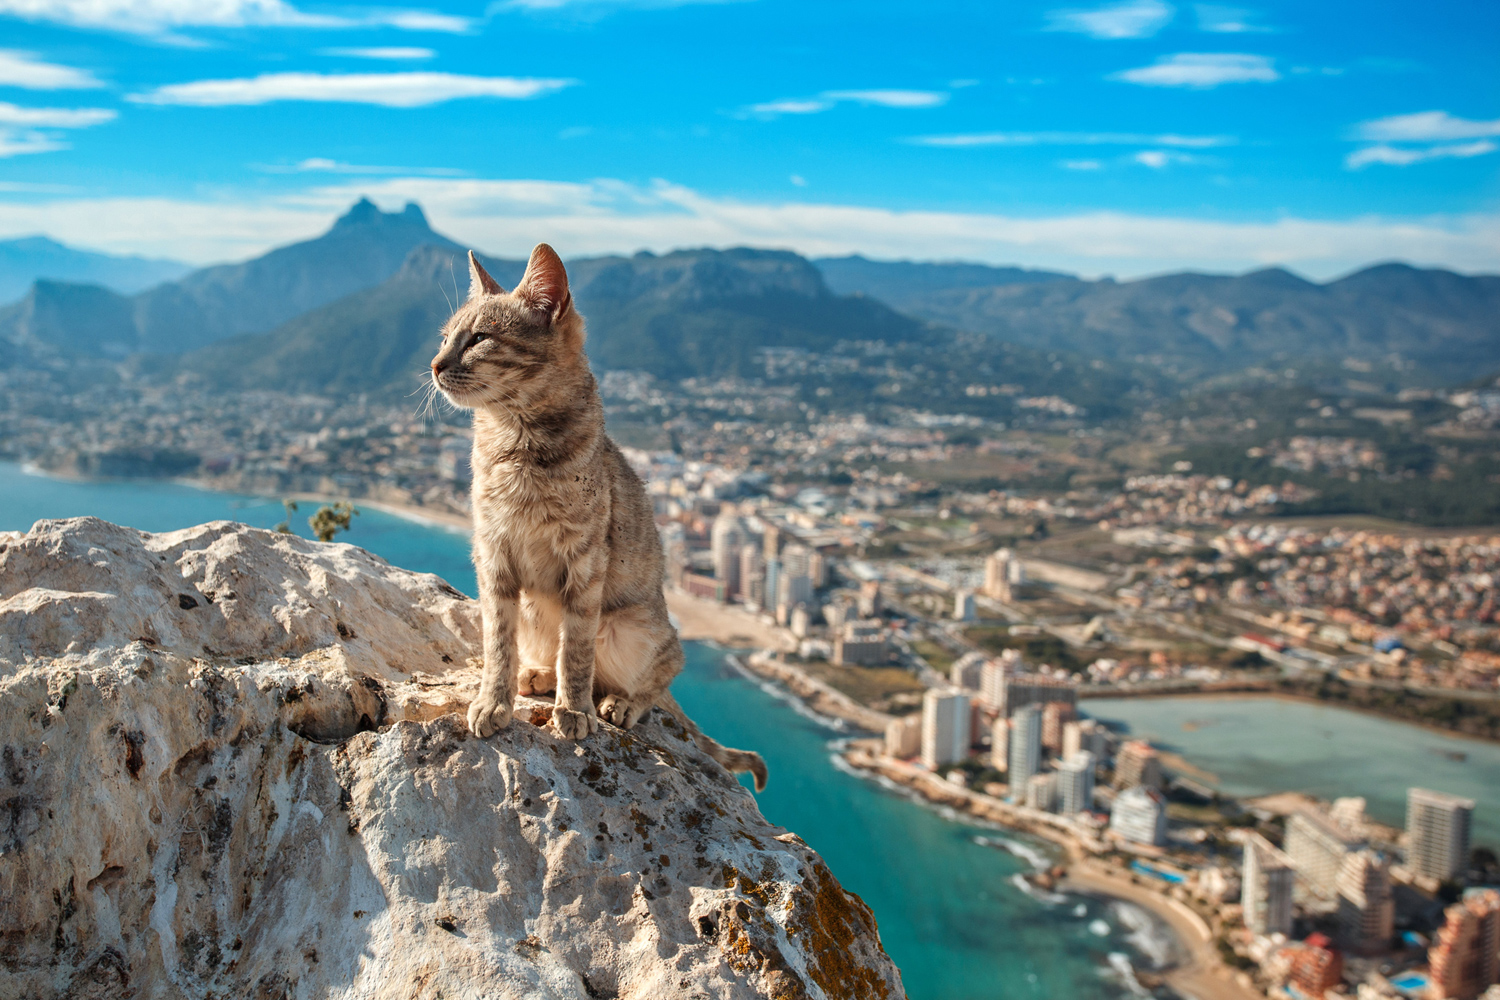 A cat sits majestically over the Spanish town of Calp.